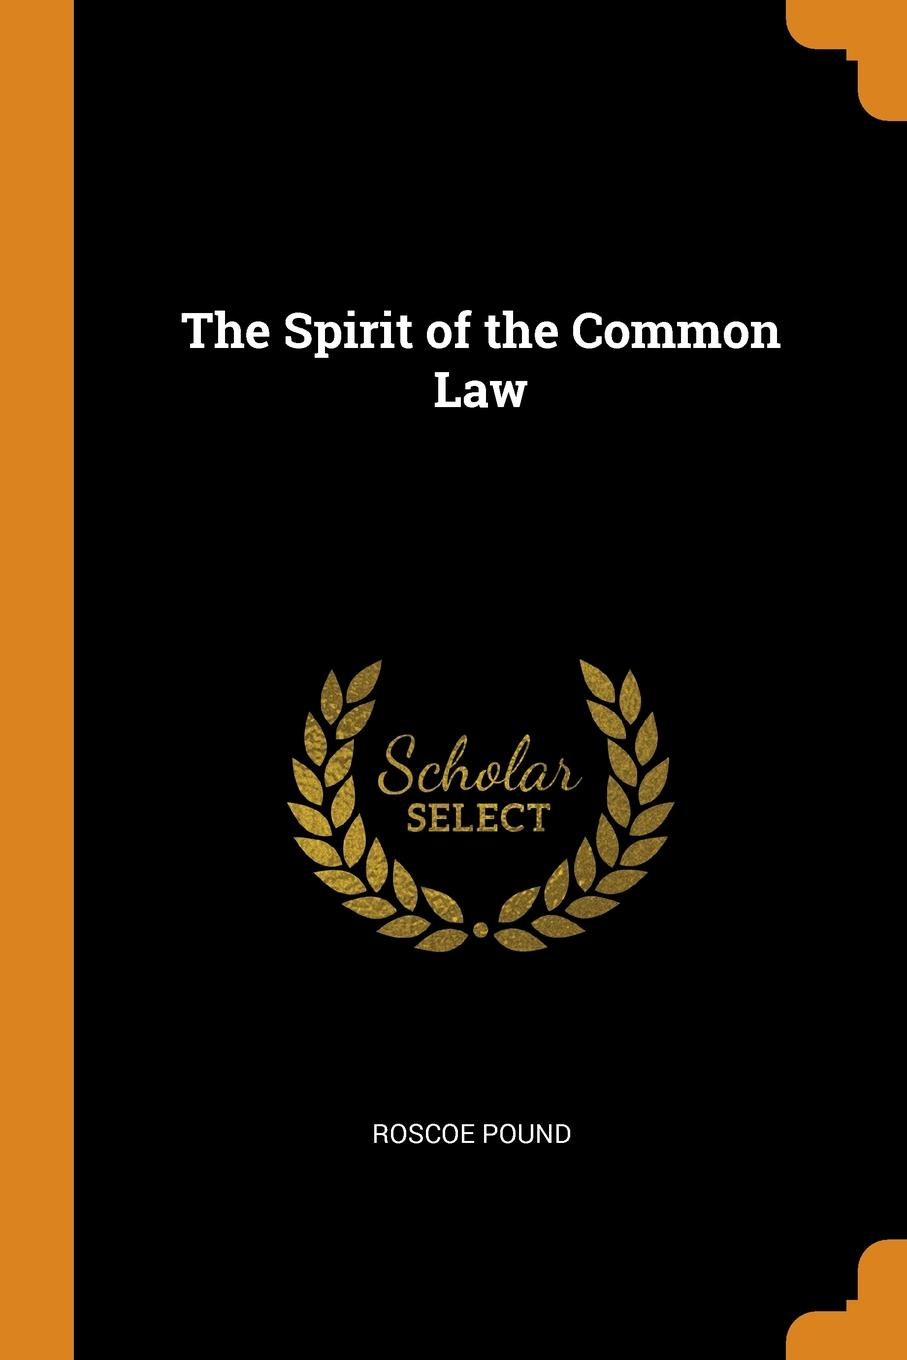 The Spirit of the Common Law. Roscoe Pound